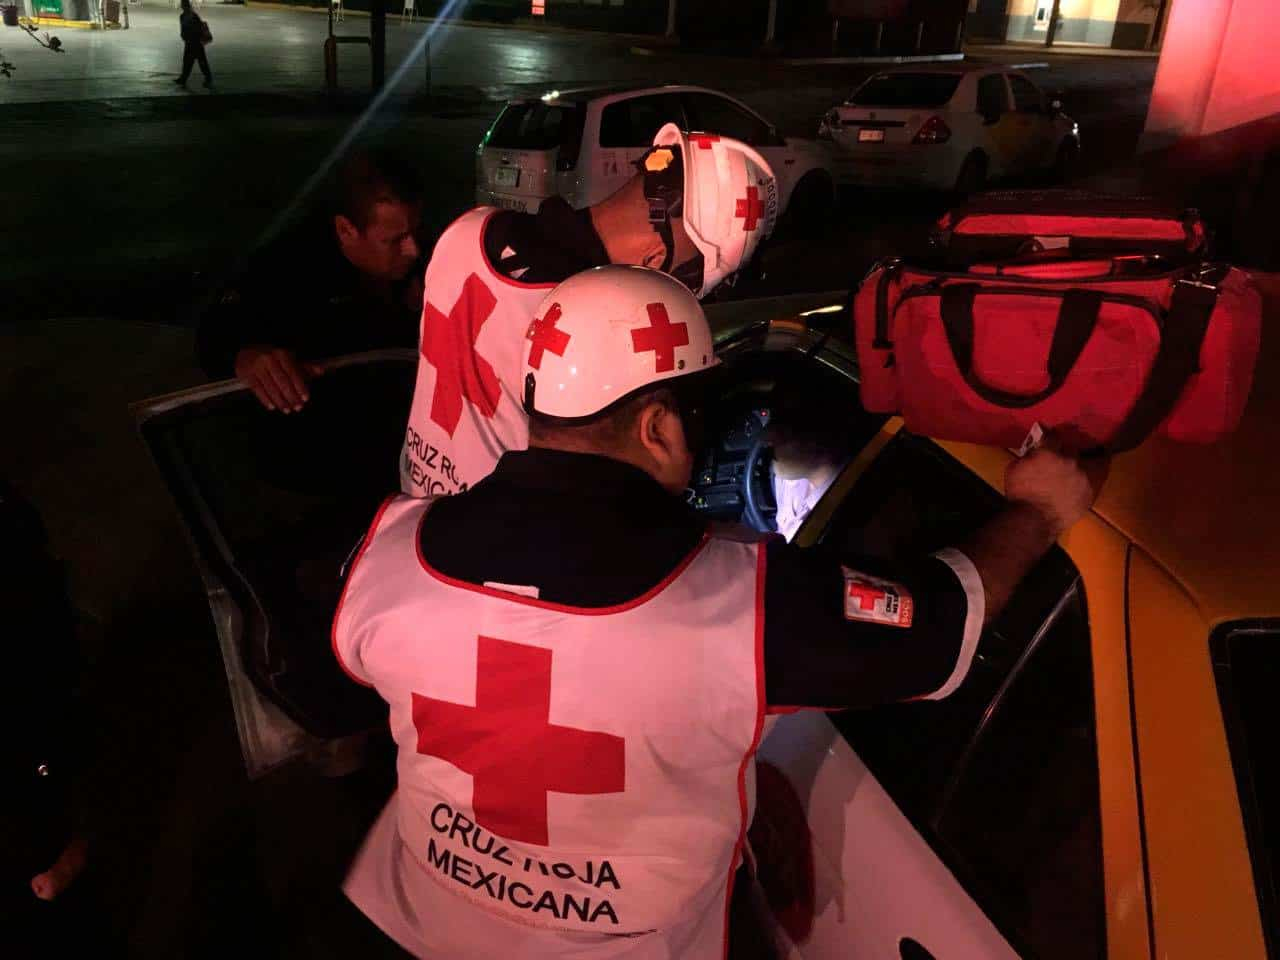 Causan incidente vial para asaltar a taxista